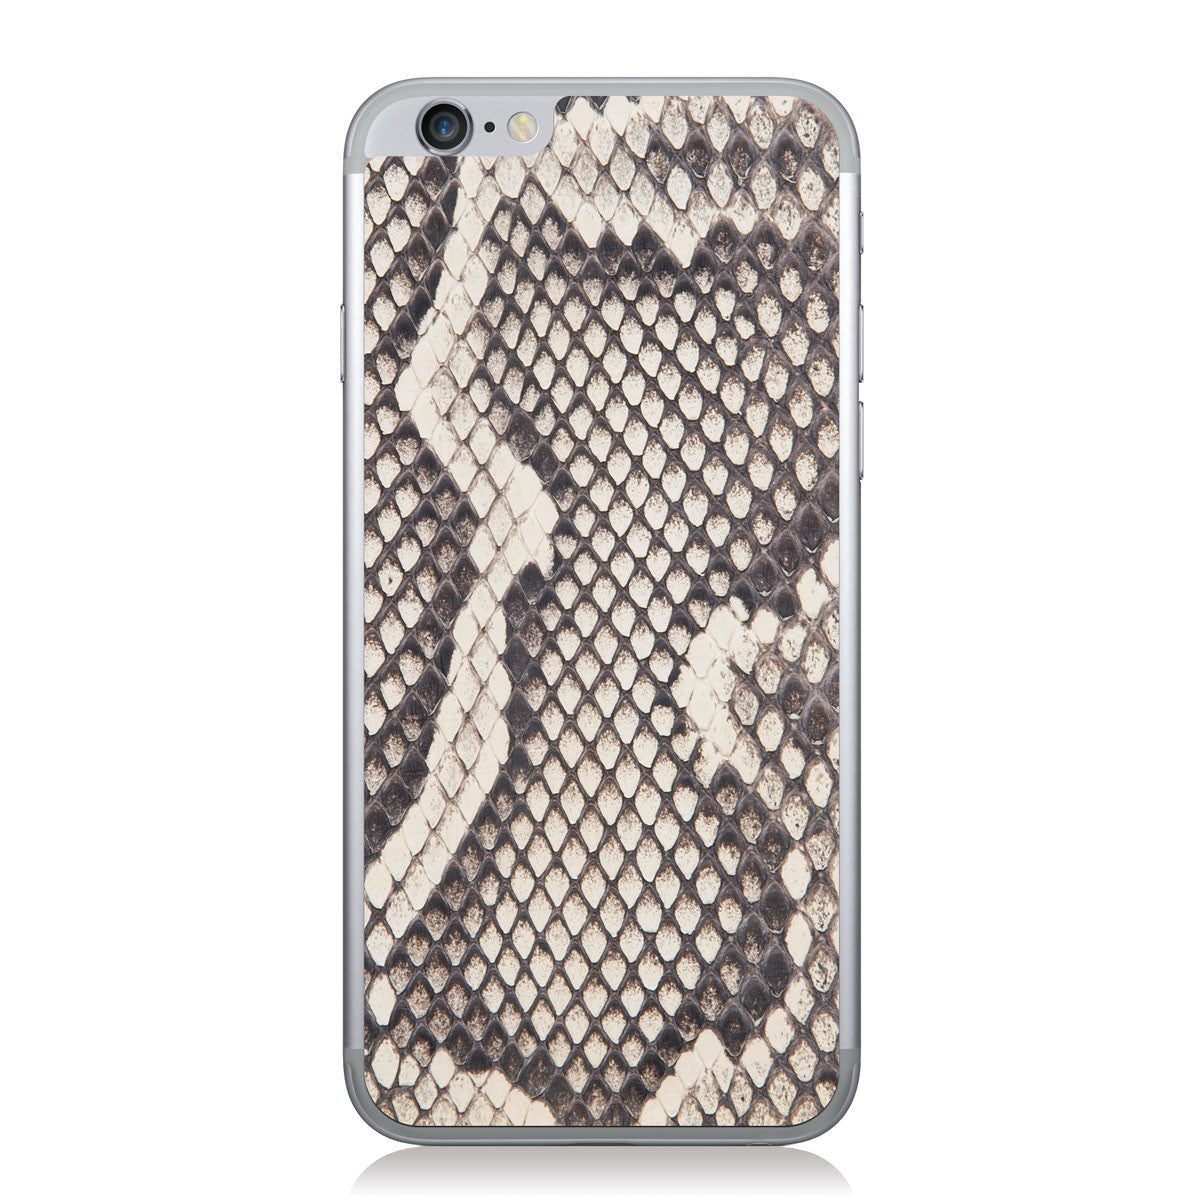 Python iPhone 6/6s Leather Skin